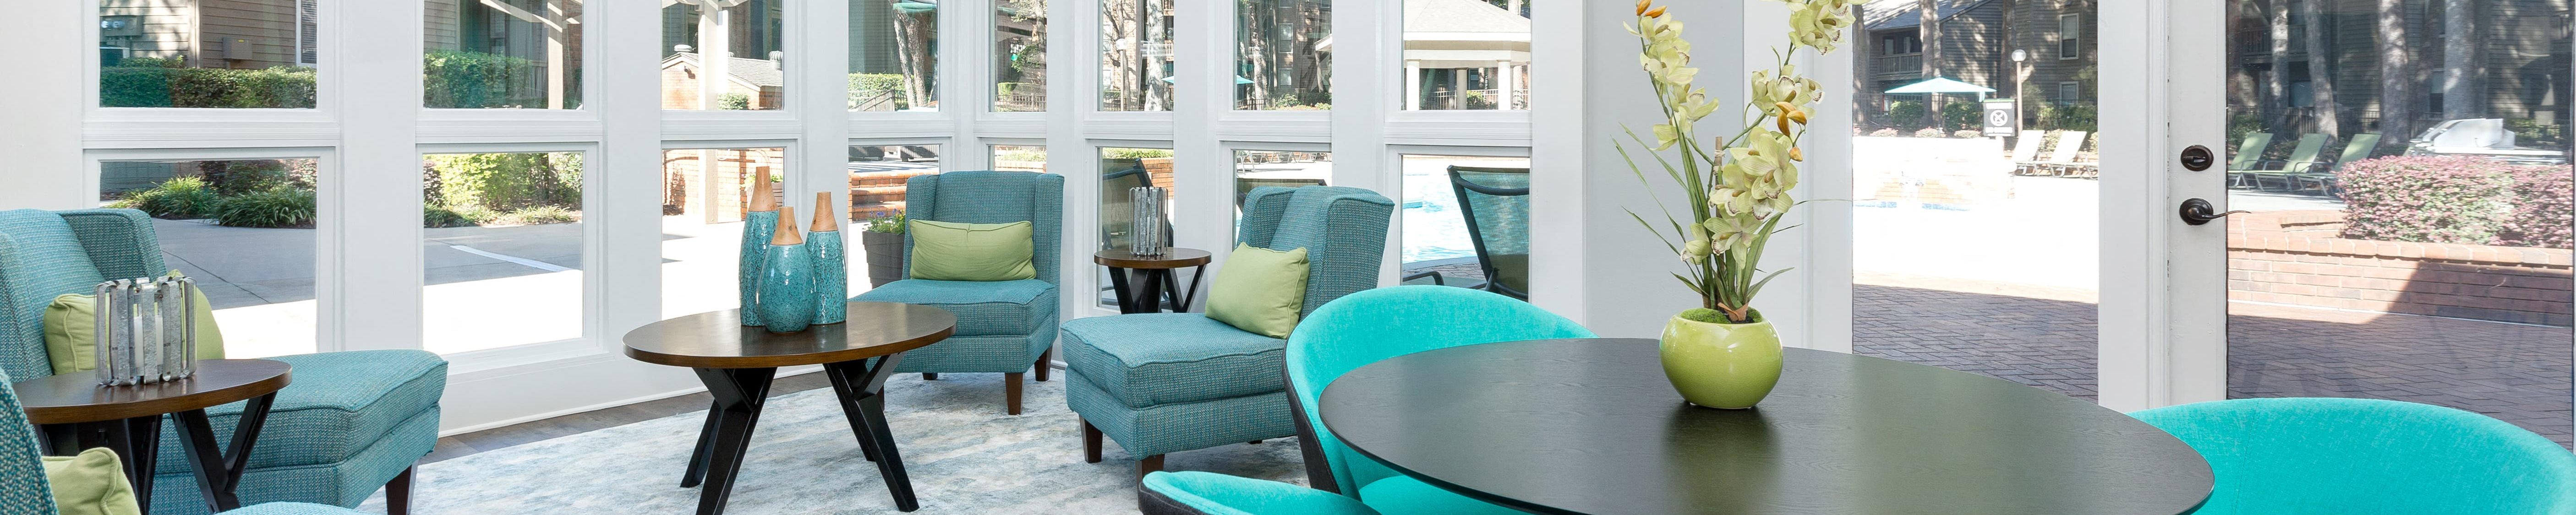 Clubhouse interior with a teal and lime color scheme, two wooden tables, a wall of windows, and a light blue and white rug